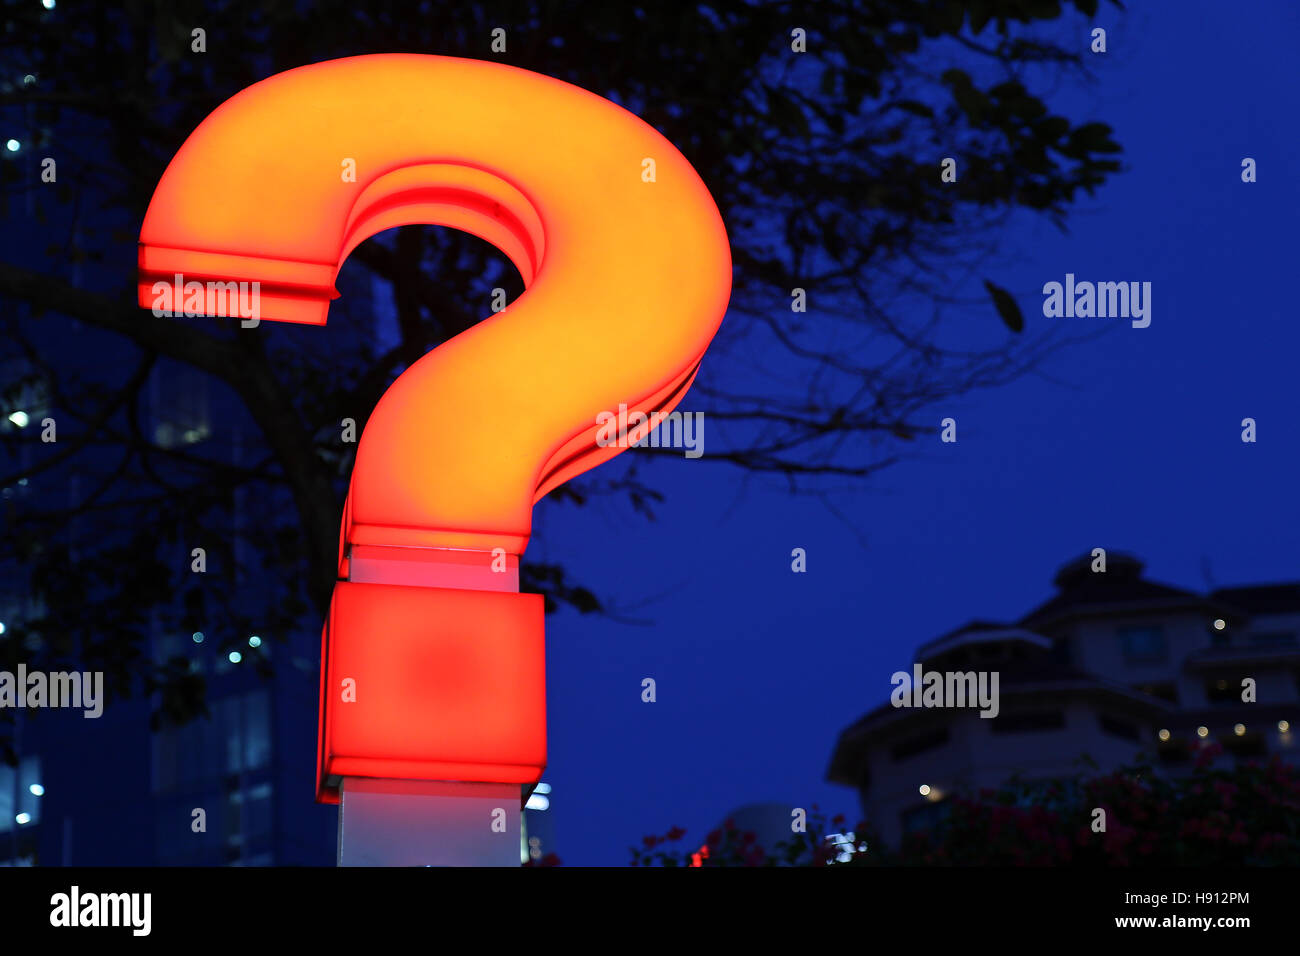 Illuminated question mark - Stock Image